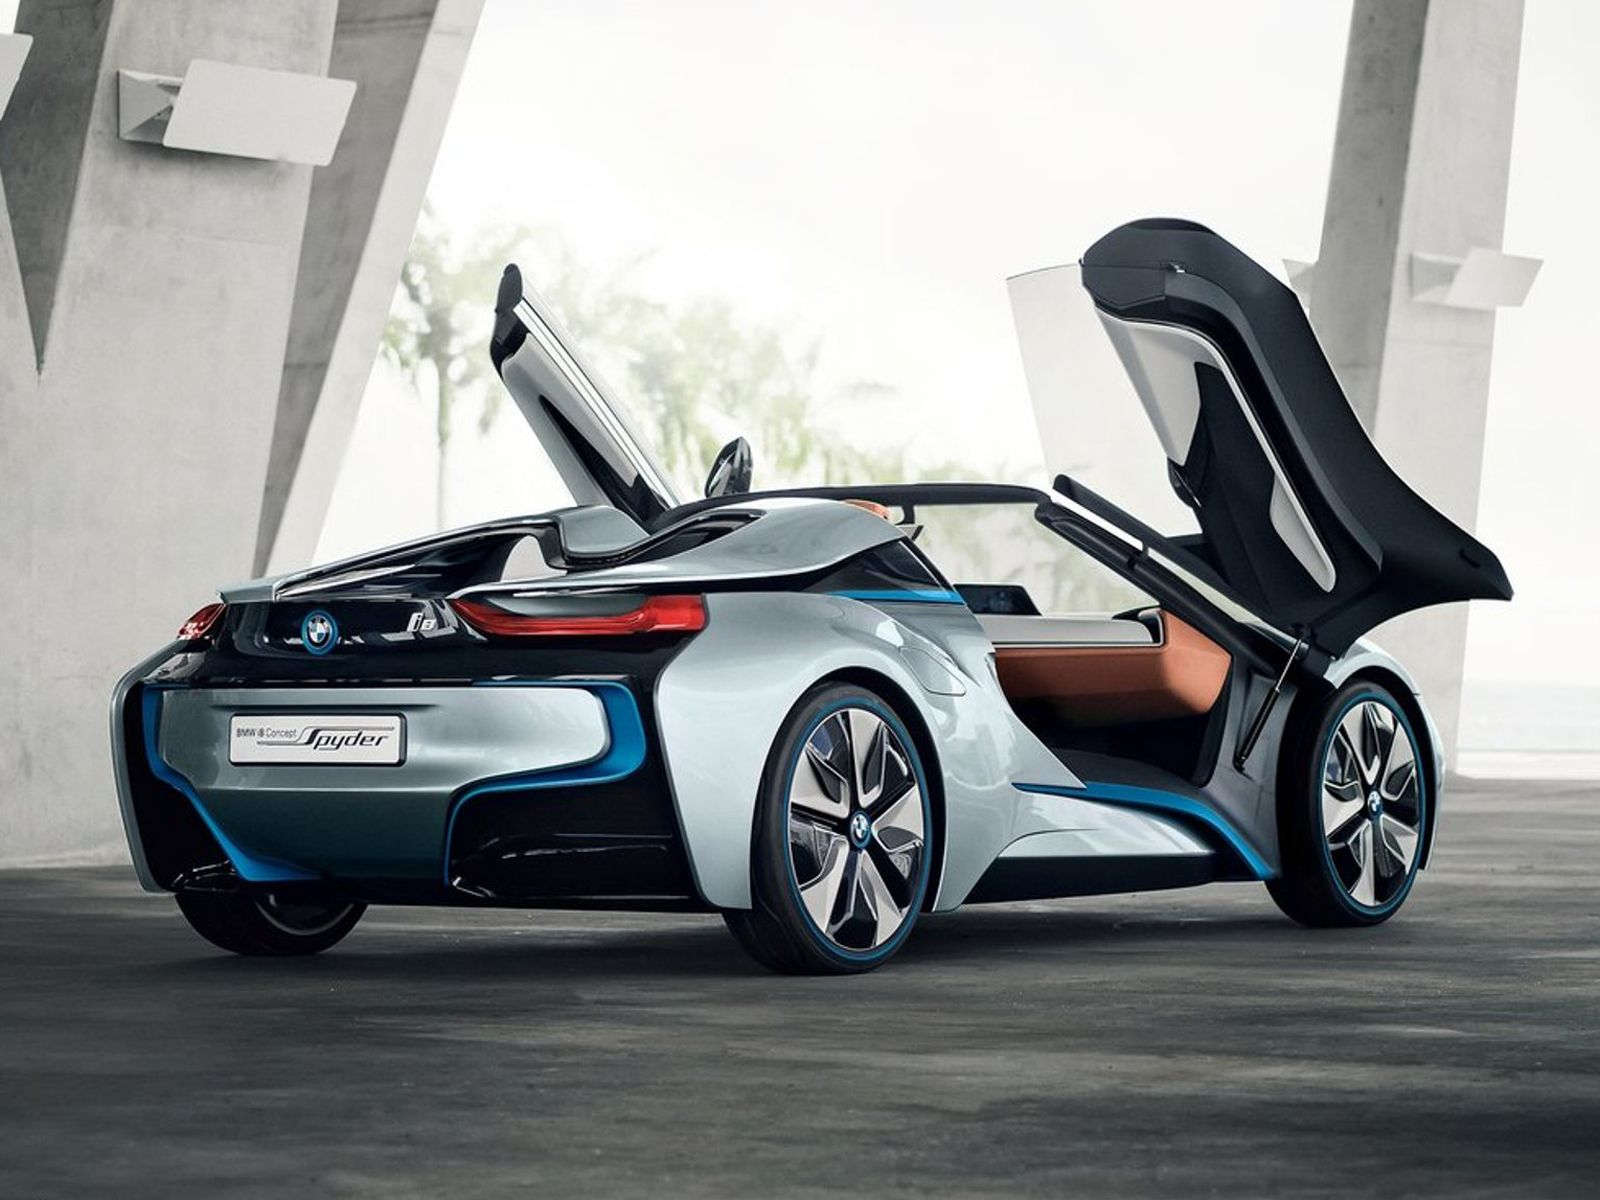 This Car Is Really Amazing And New BMW Electric Car,itu0027s Called Itu0027s One Of  Best BMW Models, It Has An Amazing Body Shape With Very Cool Design,